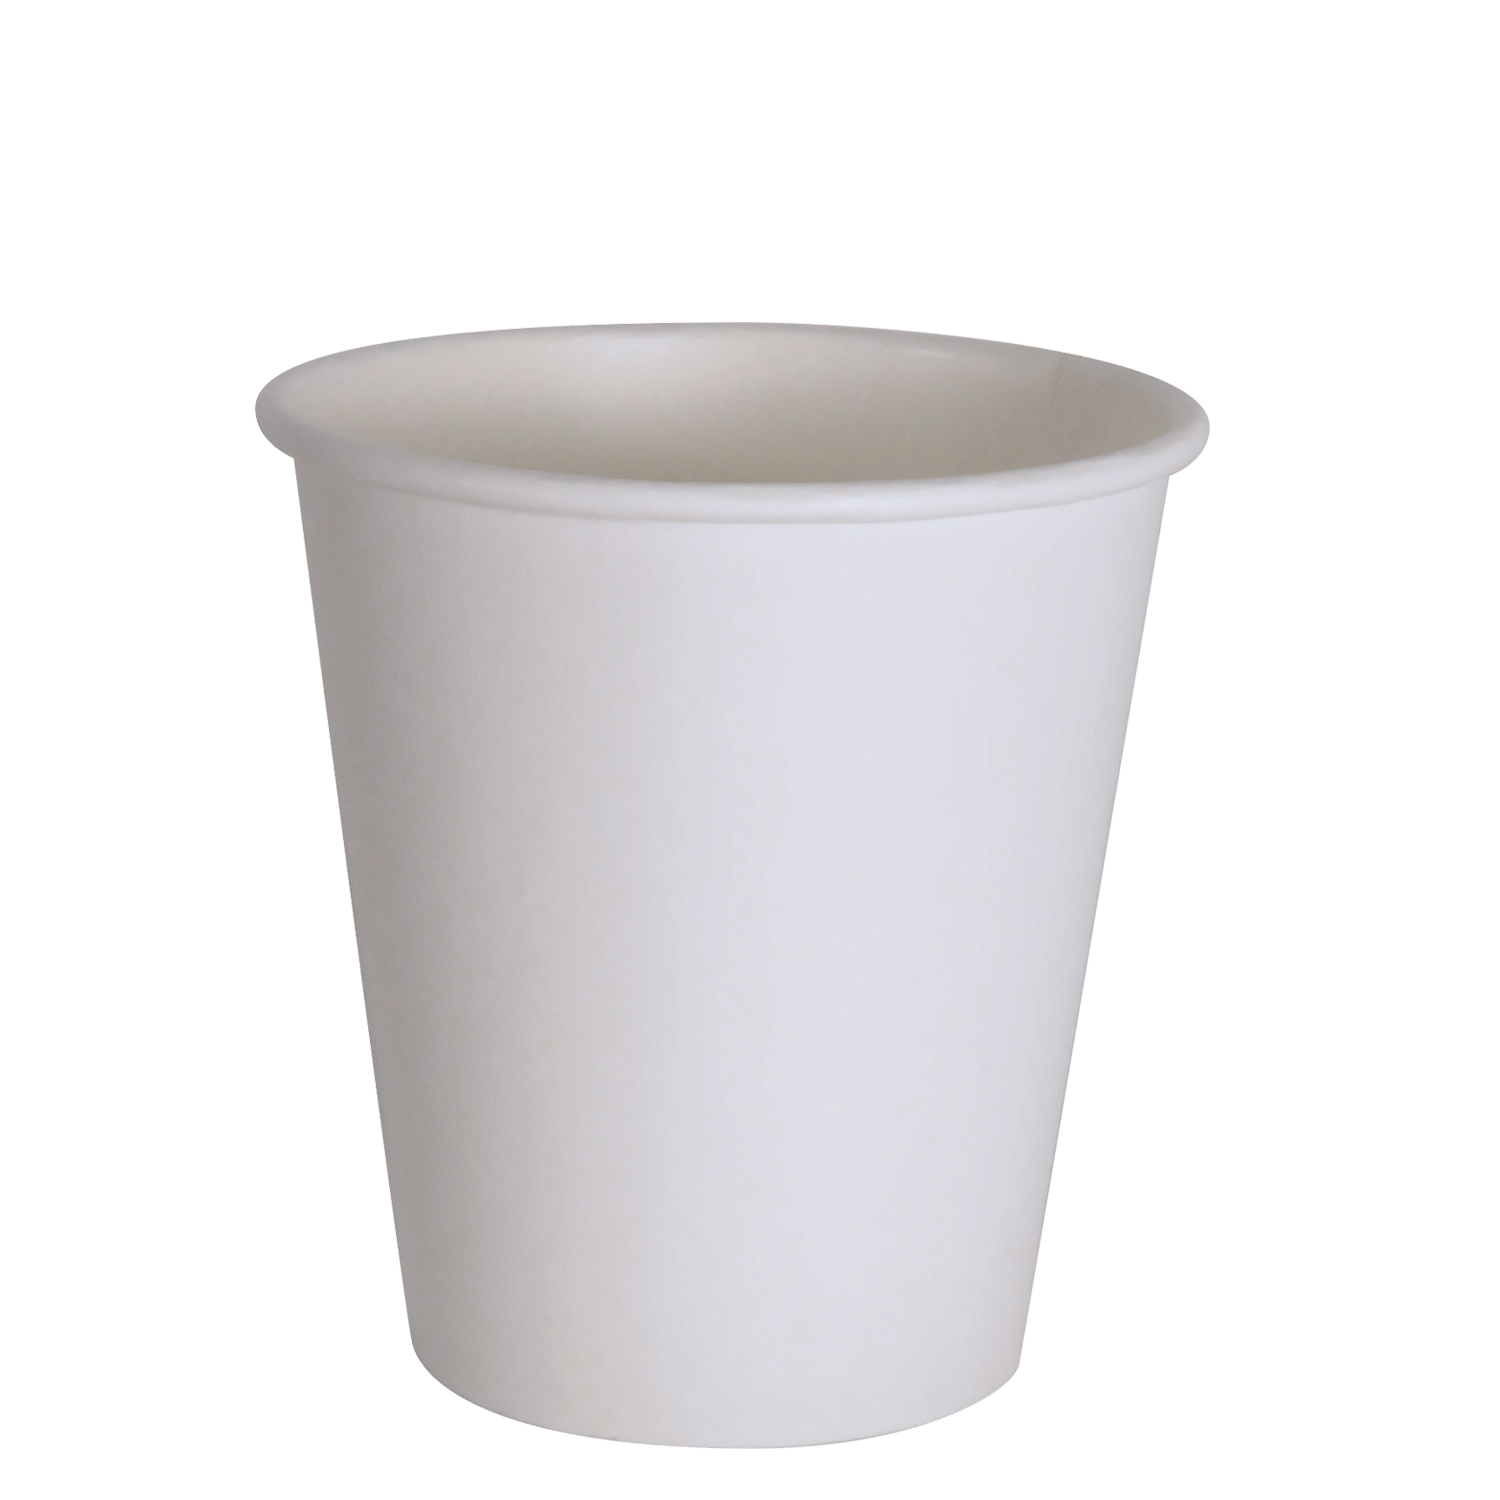 Cup transparent 10 oz. White hot